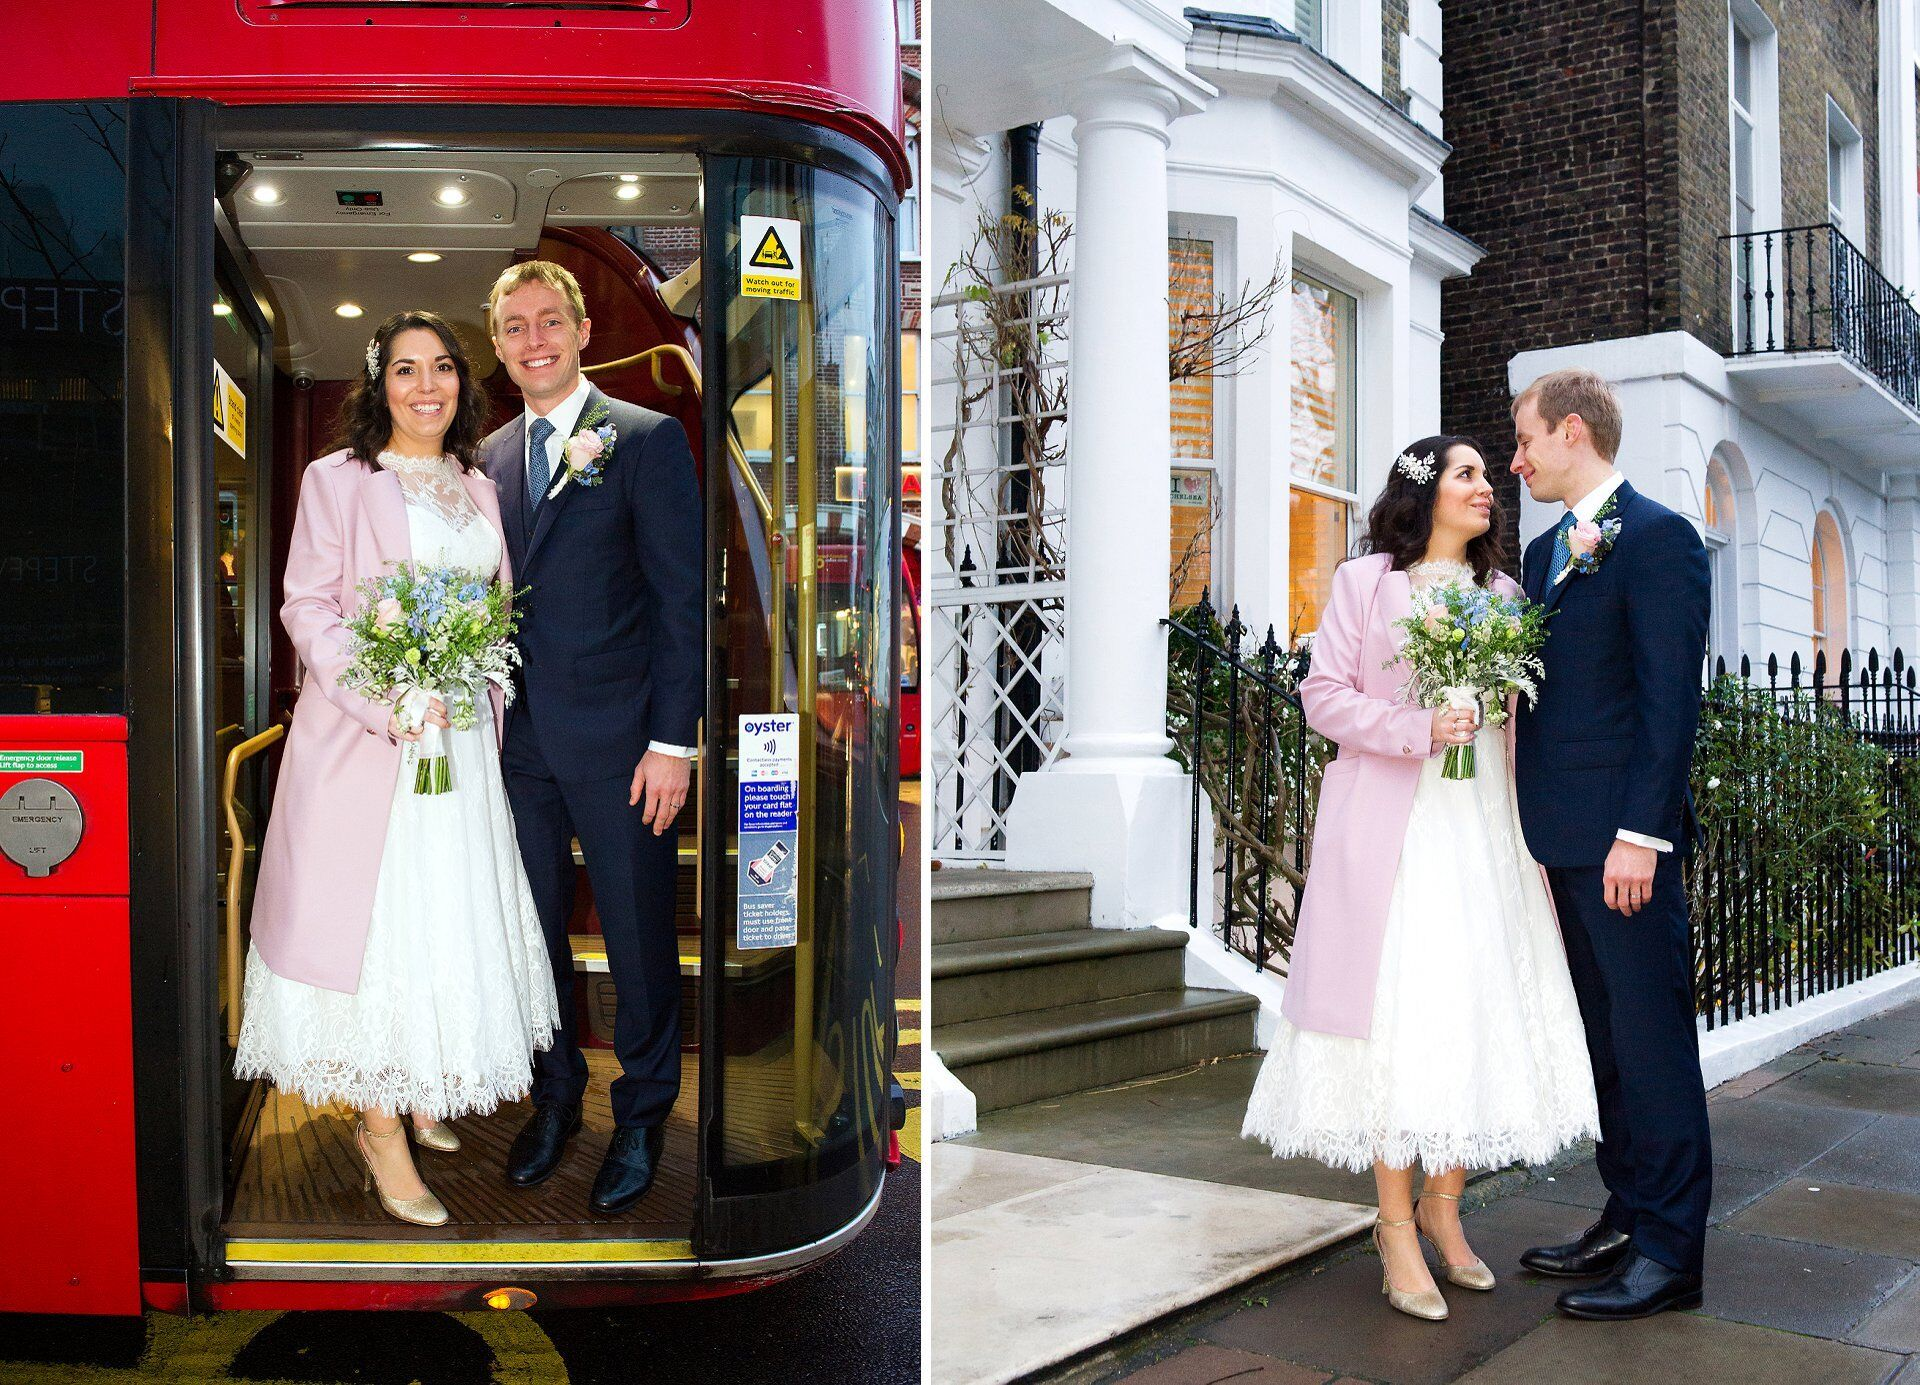 bride adn groom on the king's road in chelsea london bus and chelsea stucco buildings